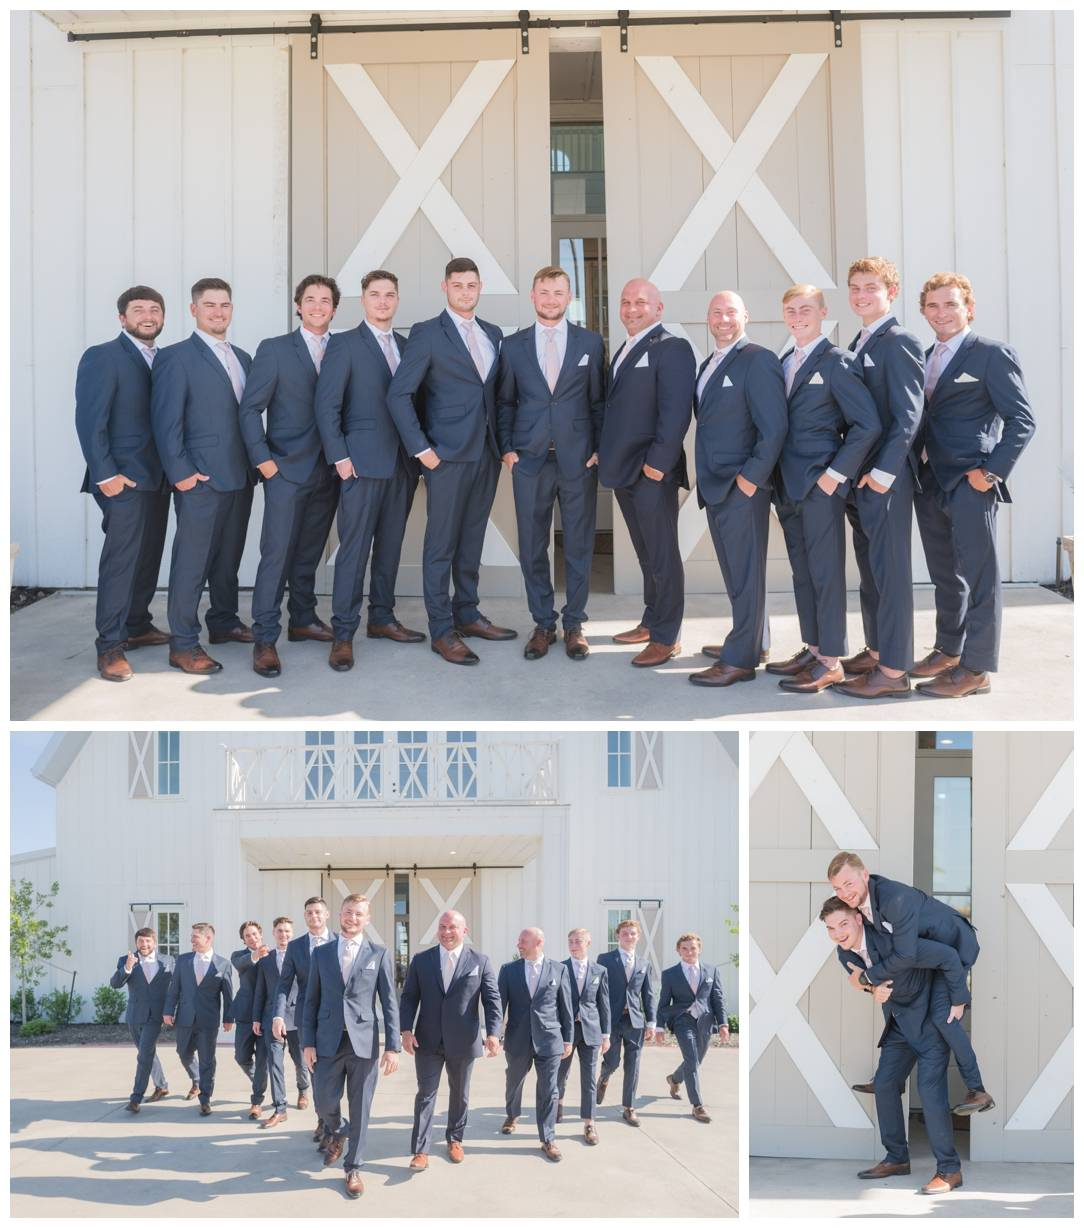 BrackinWedding,bridalparty,preceremony,